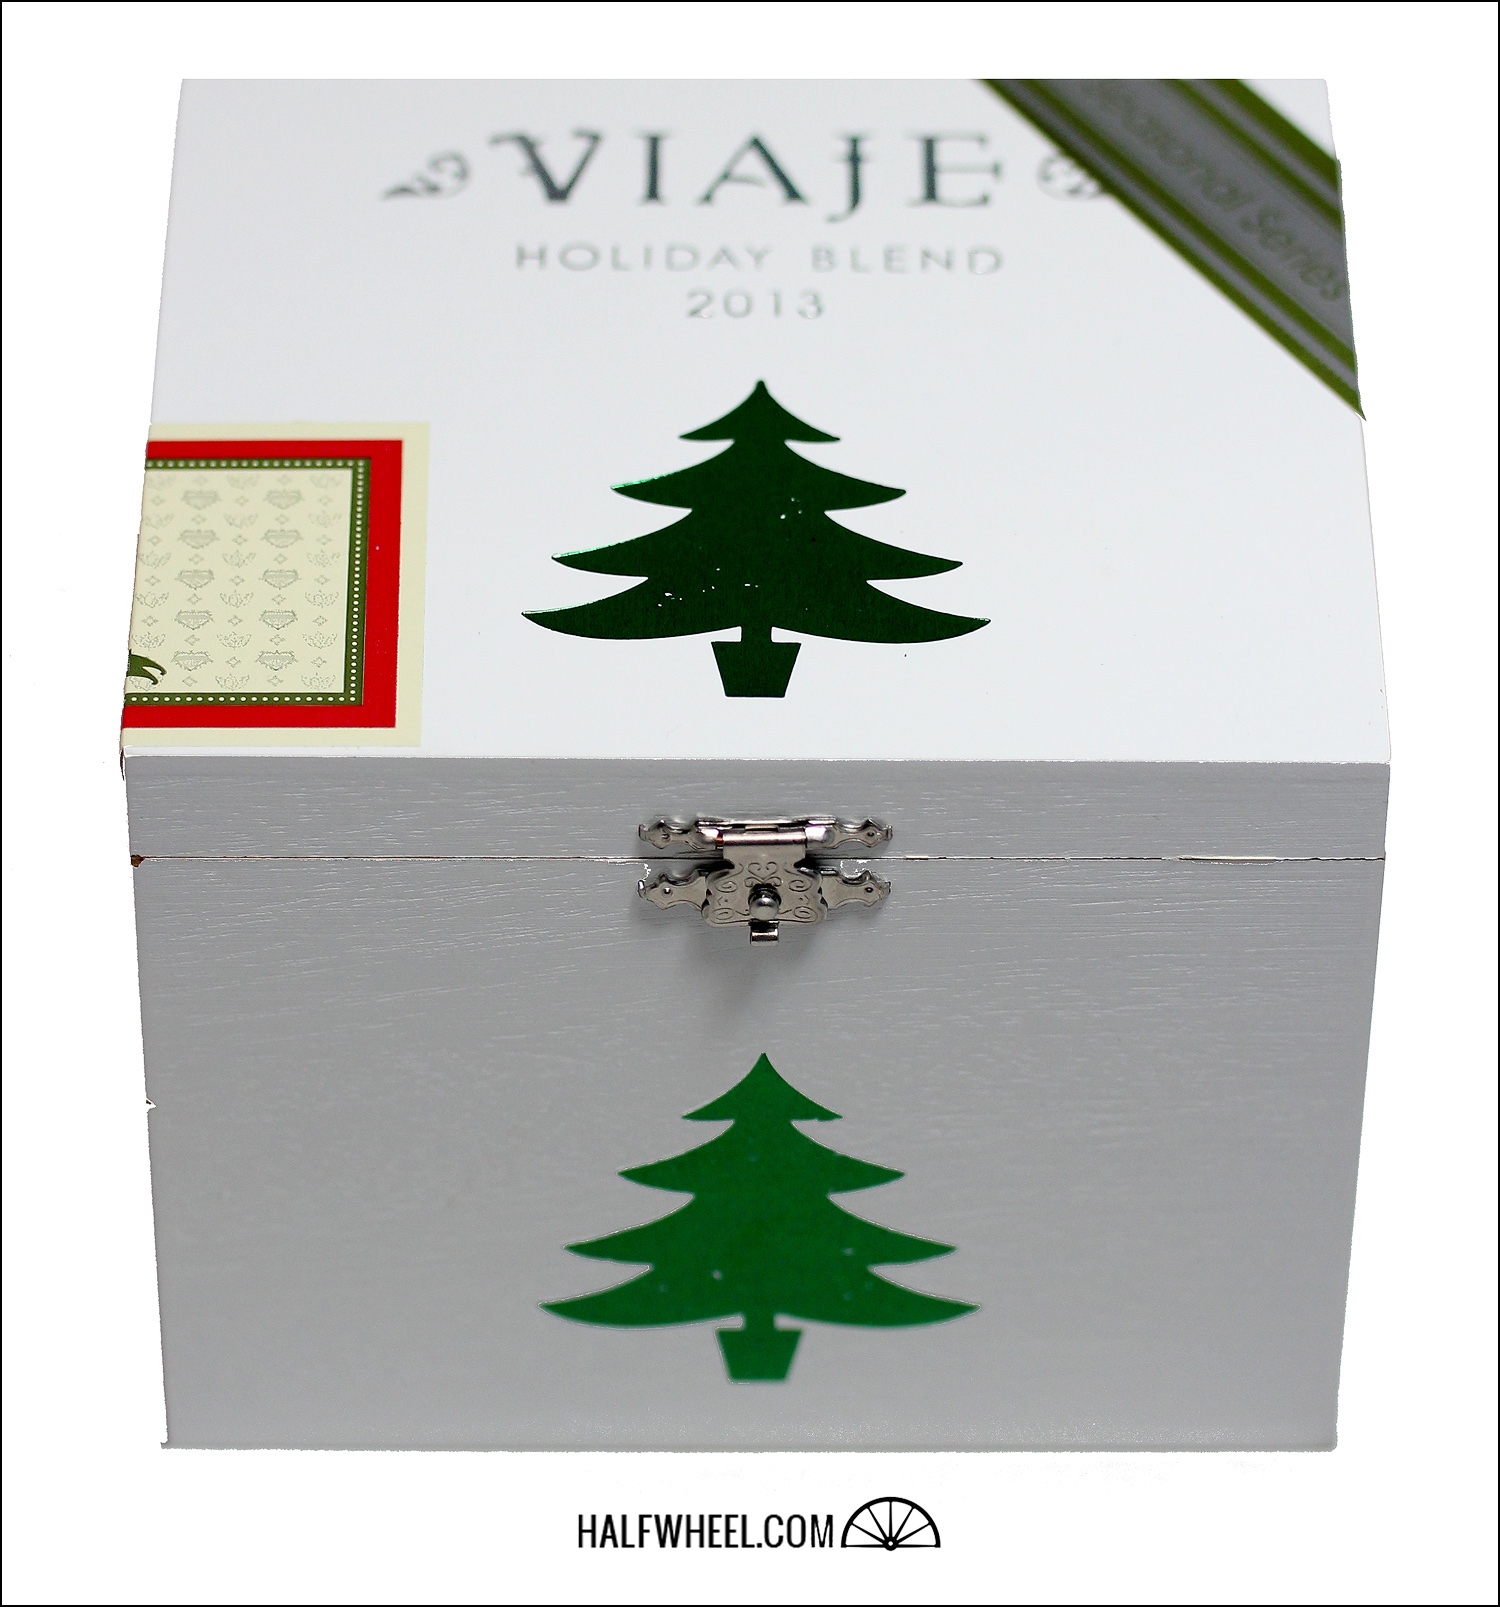 Viaje Holiday Blend Christmas Tree Box